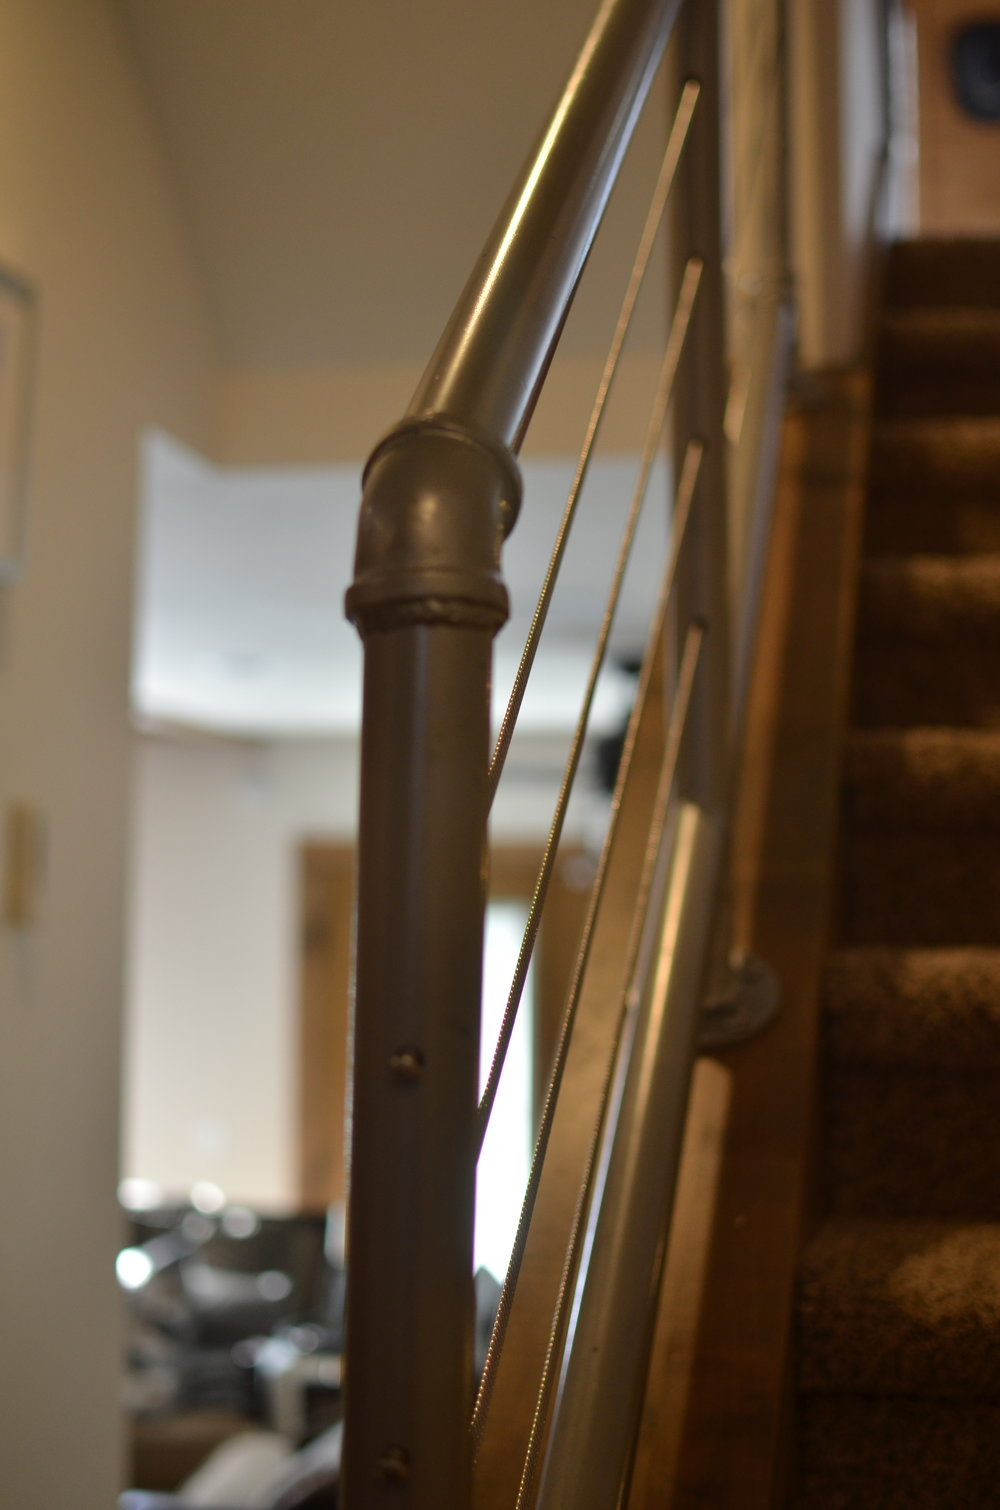 Stainless Cable Pipe Rail (2).JPG